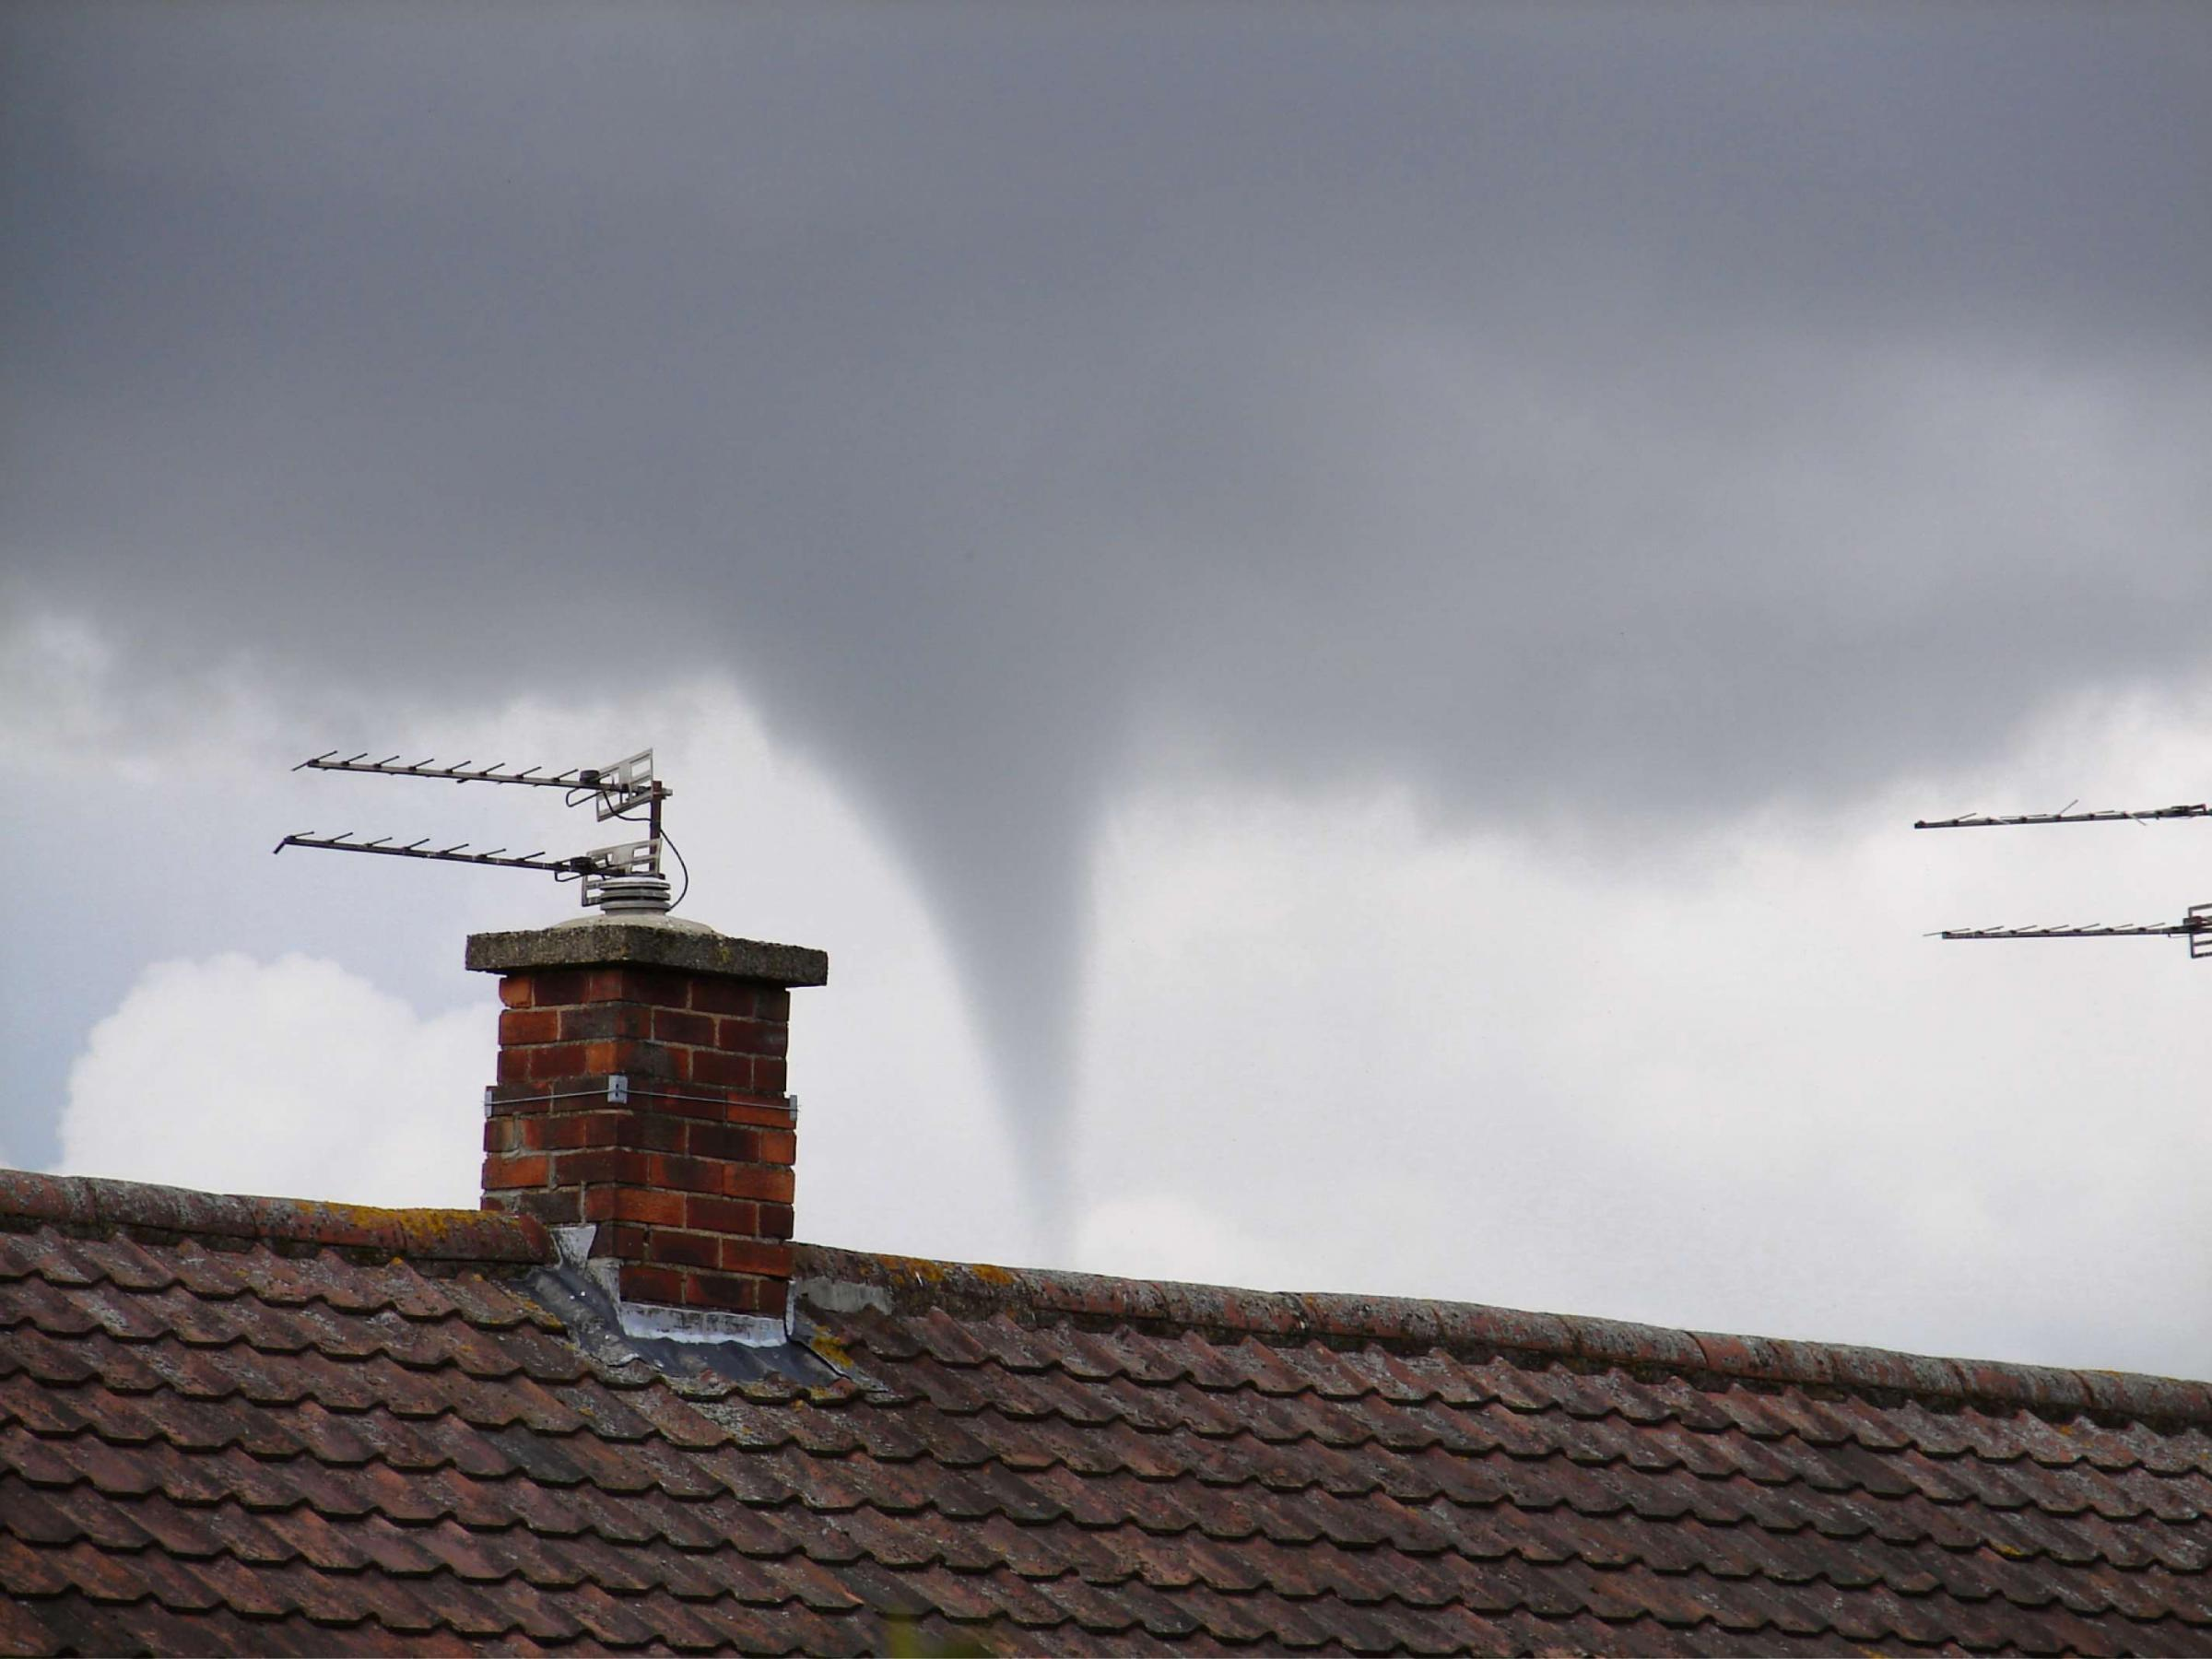 FUNNEL CLOUD: Mark Williams' photograph of the funnel cloud above Darlington